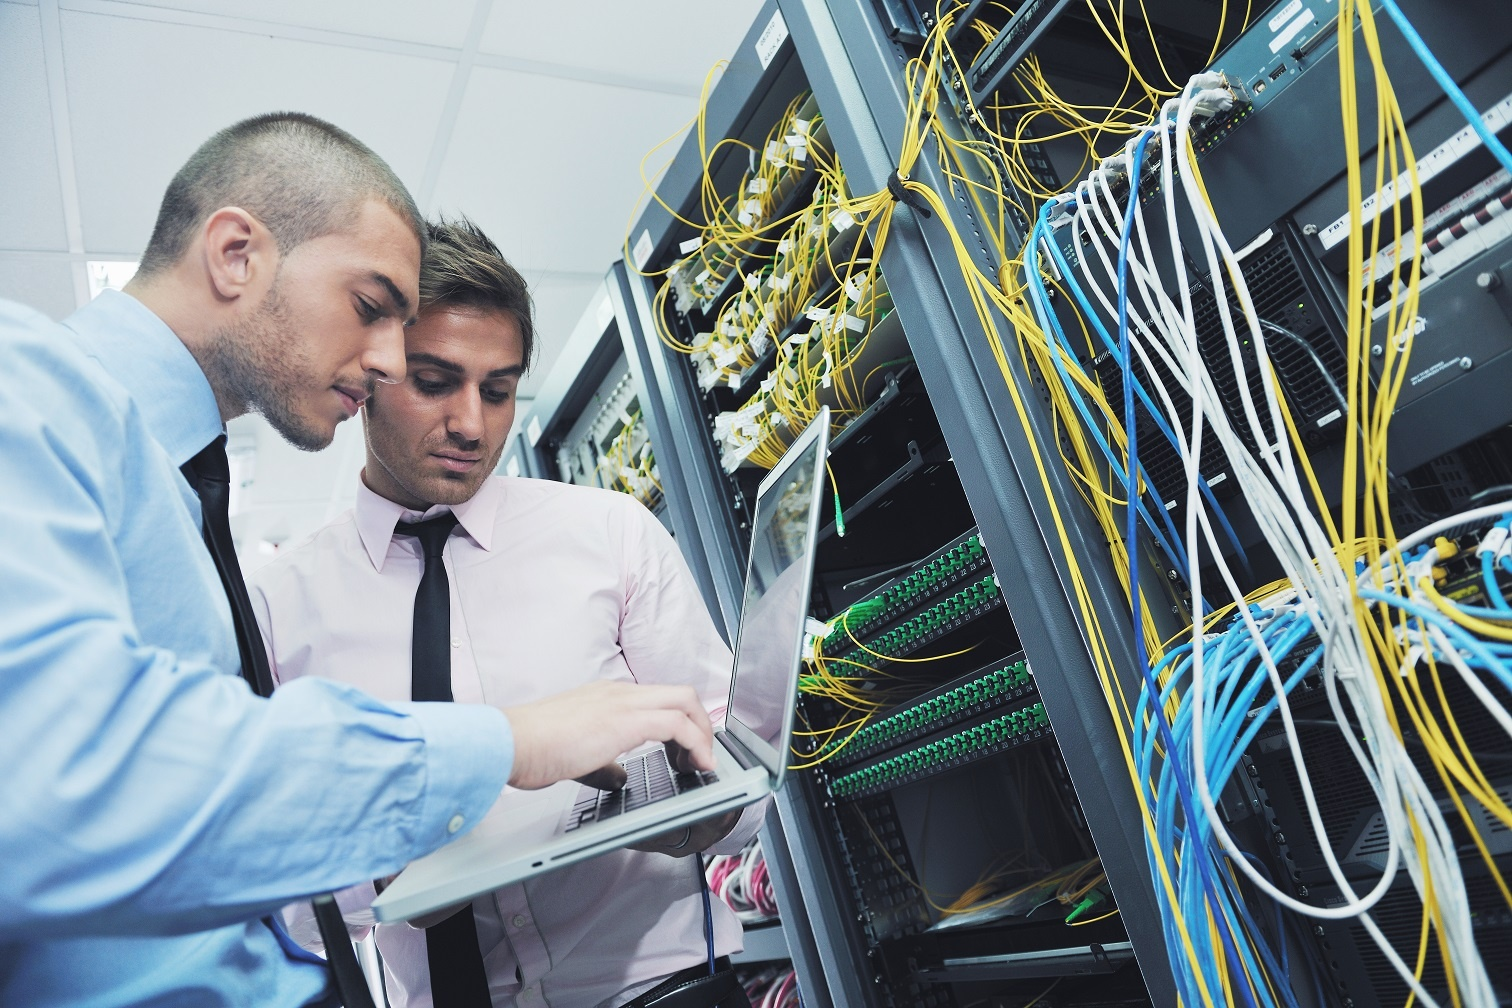 businessmen in a network server room